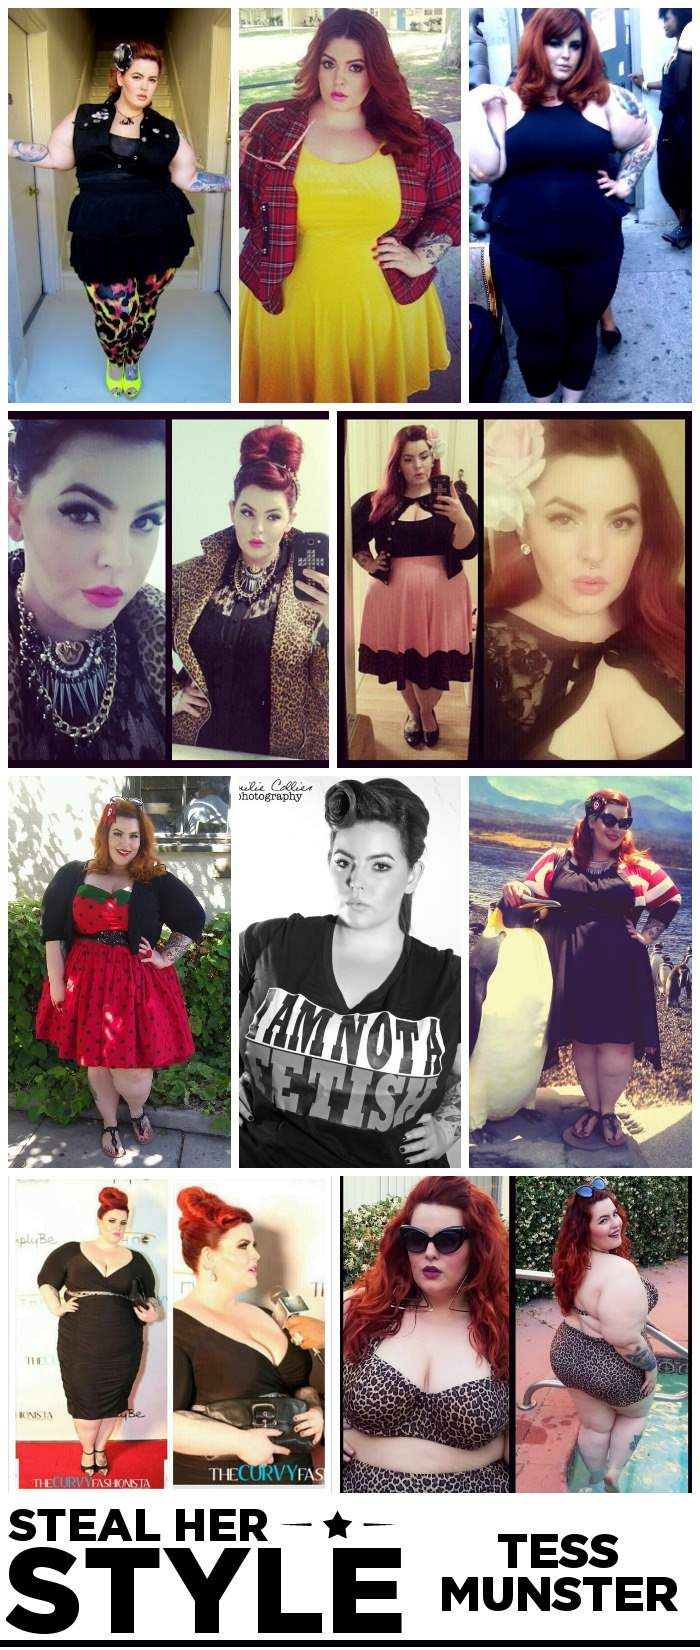 Tess Munster Steal Her Style Collage